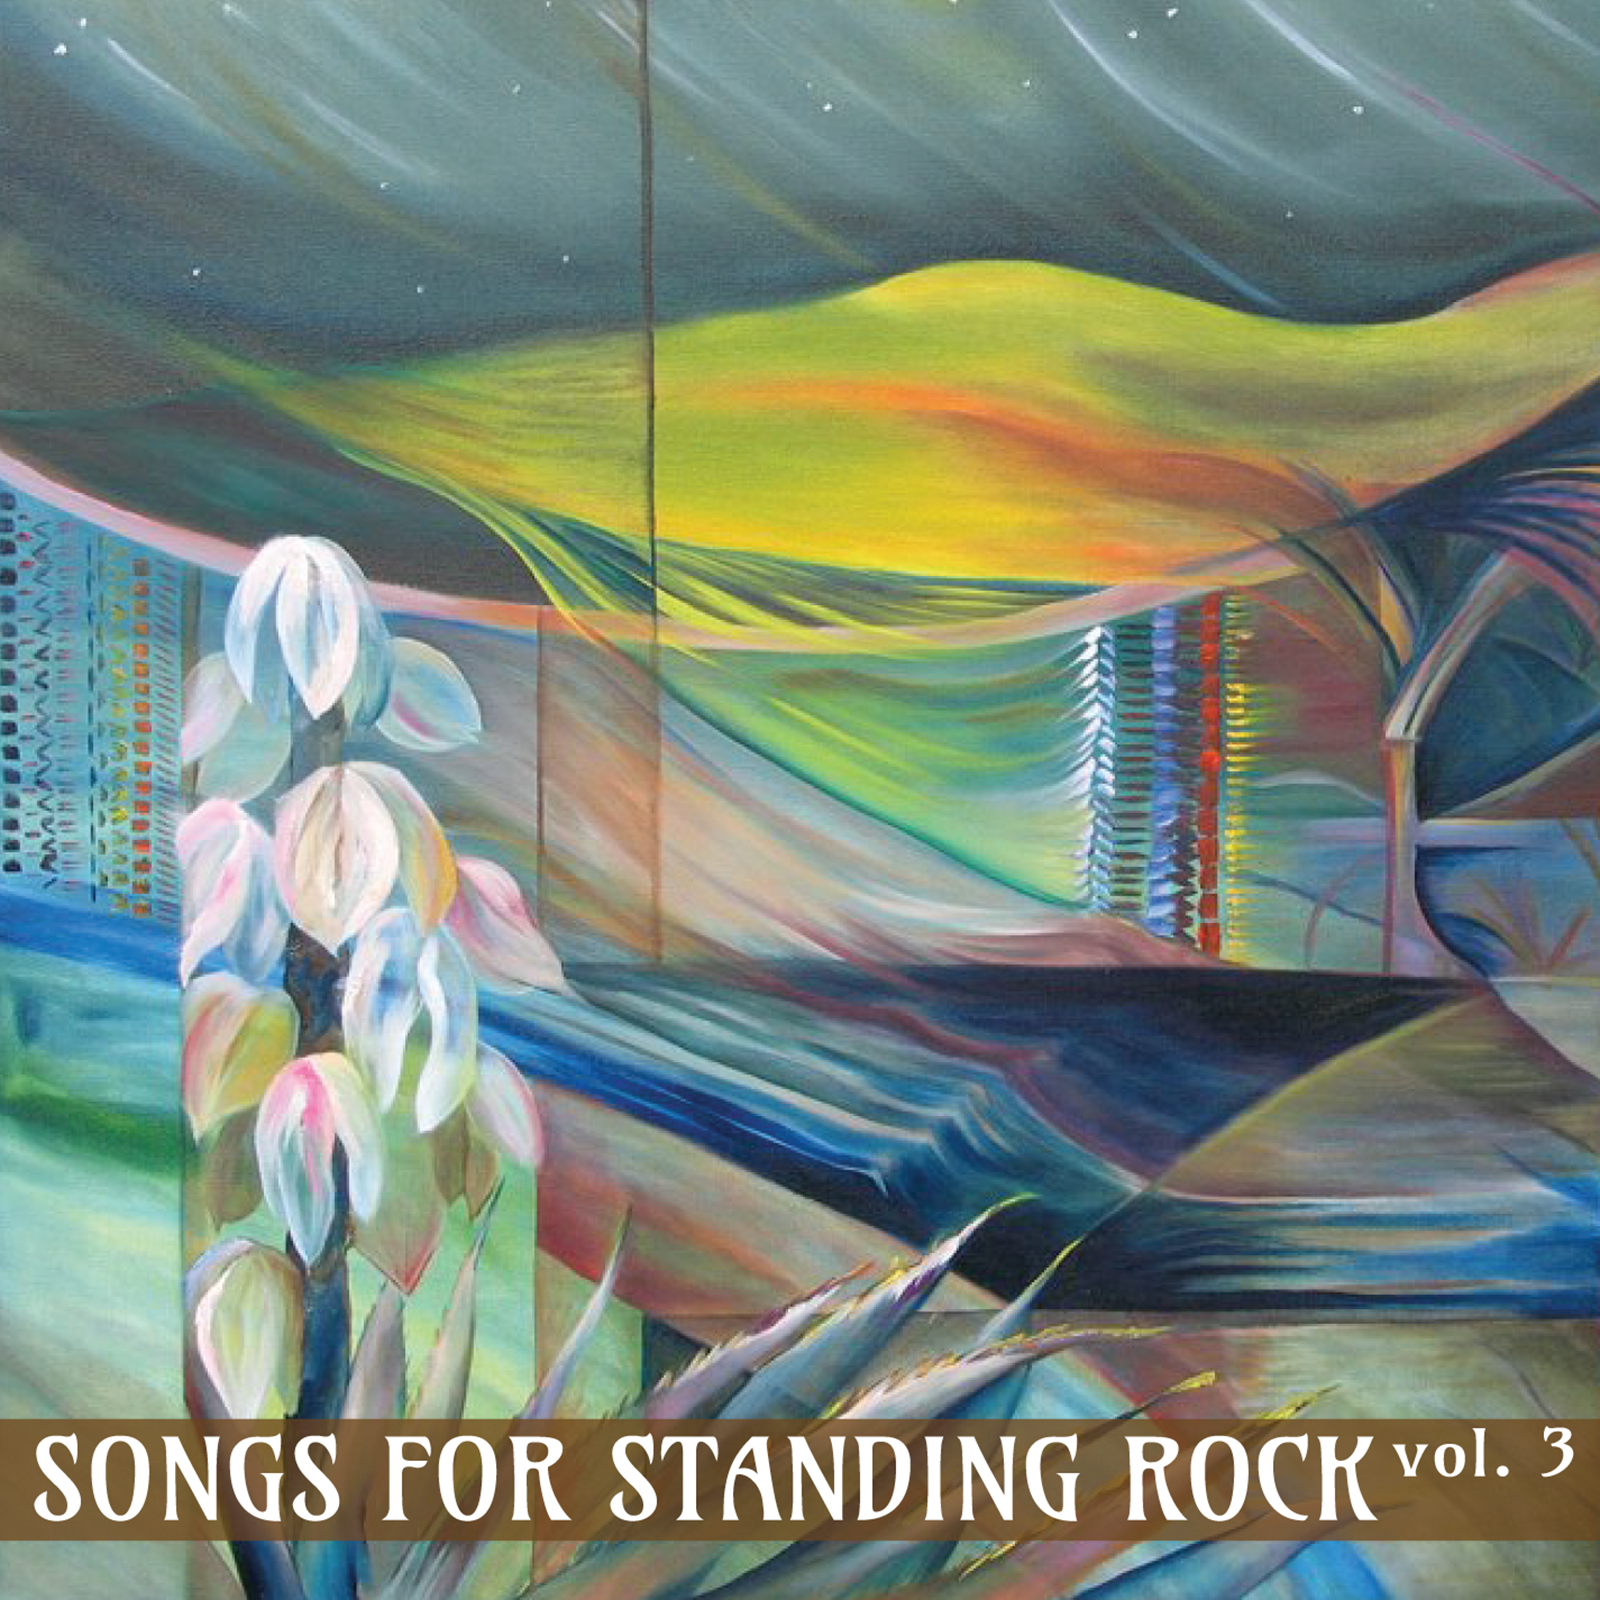 Songs for Standing Rock Vol. 3_cover-01-01.png